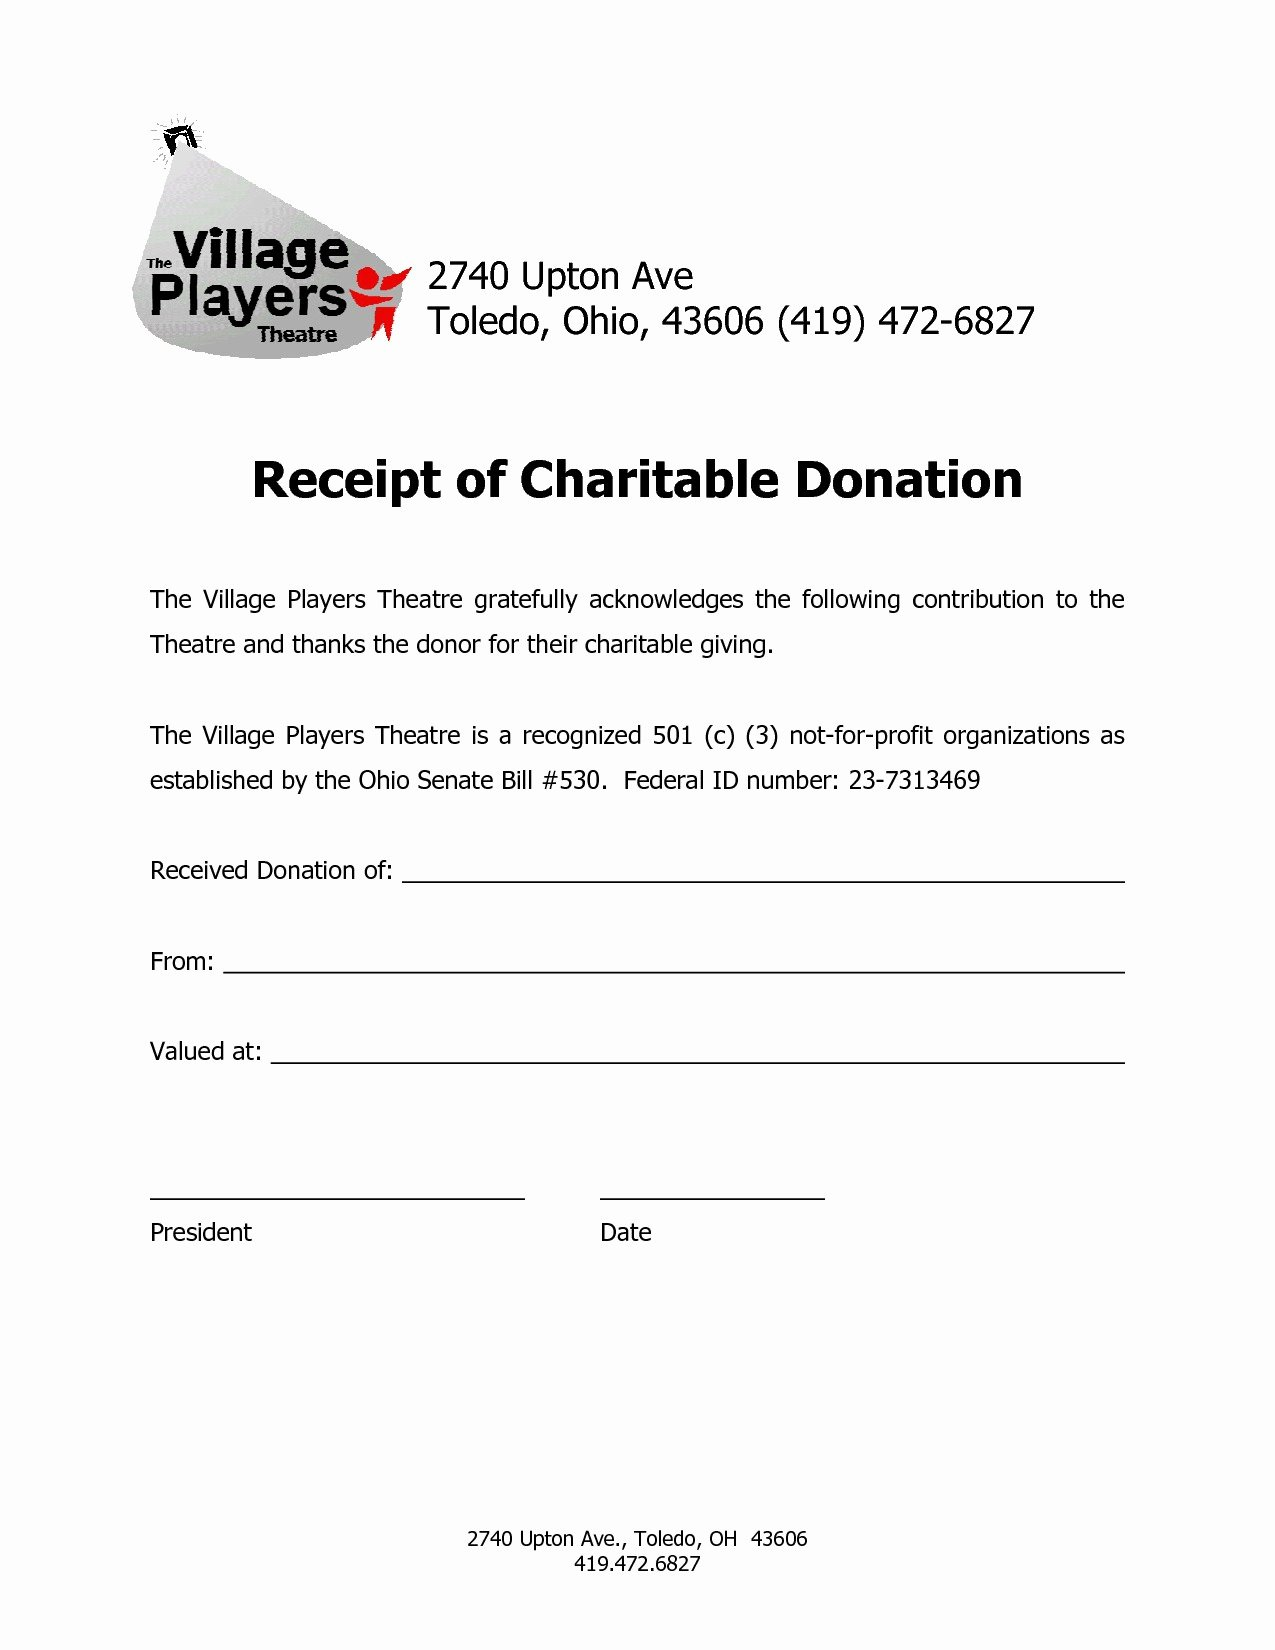 Charitable Contribution Receipt Template Fresh Non Profit Tax Deduction Letter Template Collection